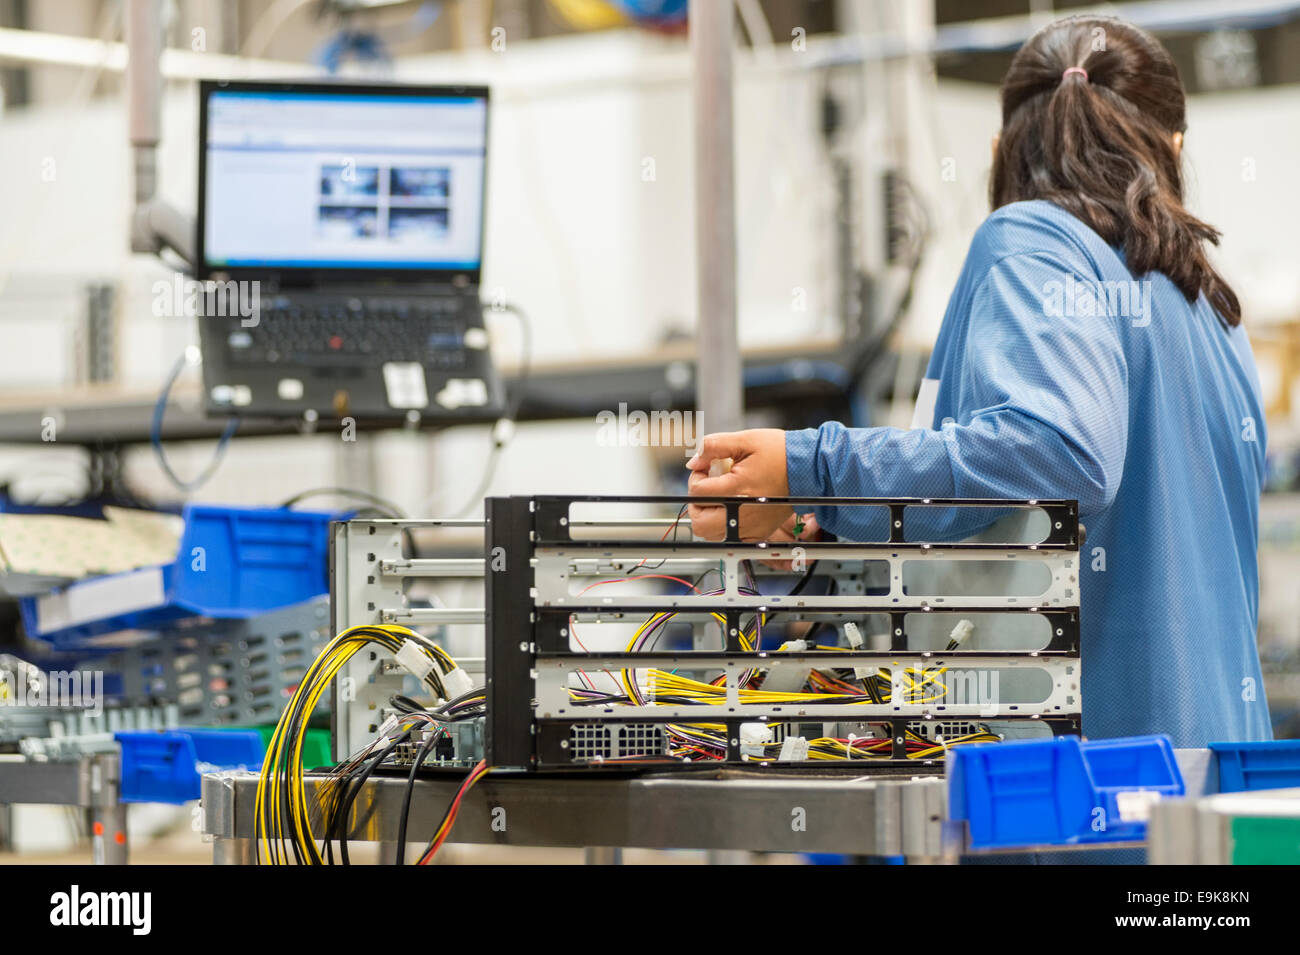 Rear view of female technician repairing computer part in electronics industry - Stock Image